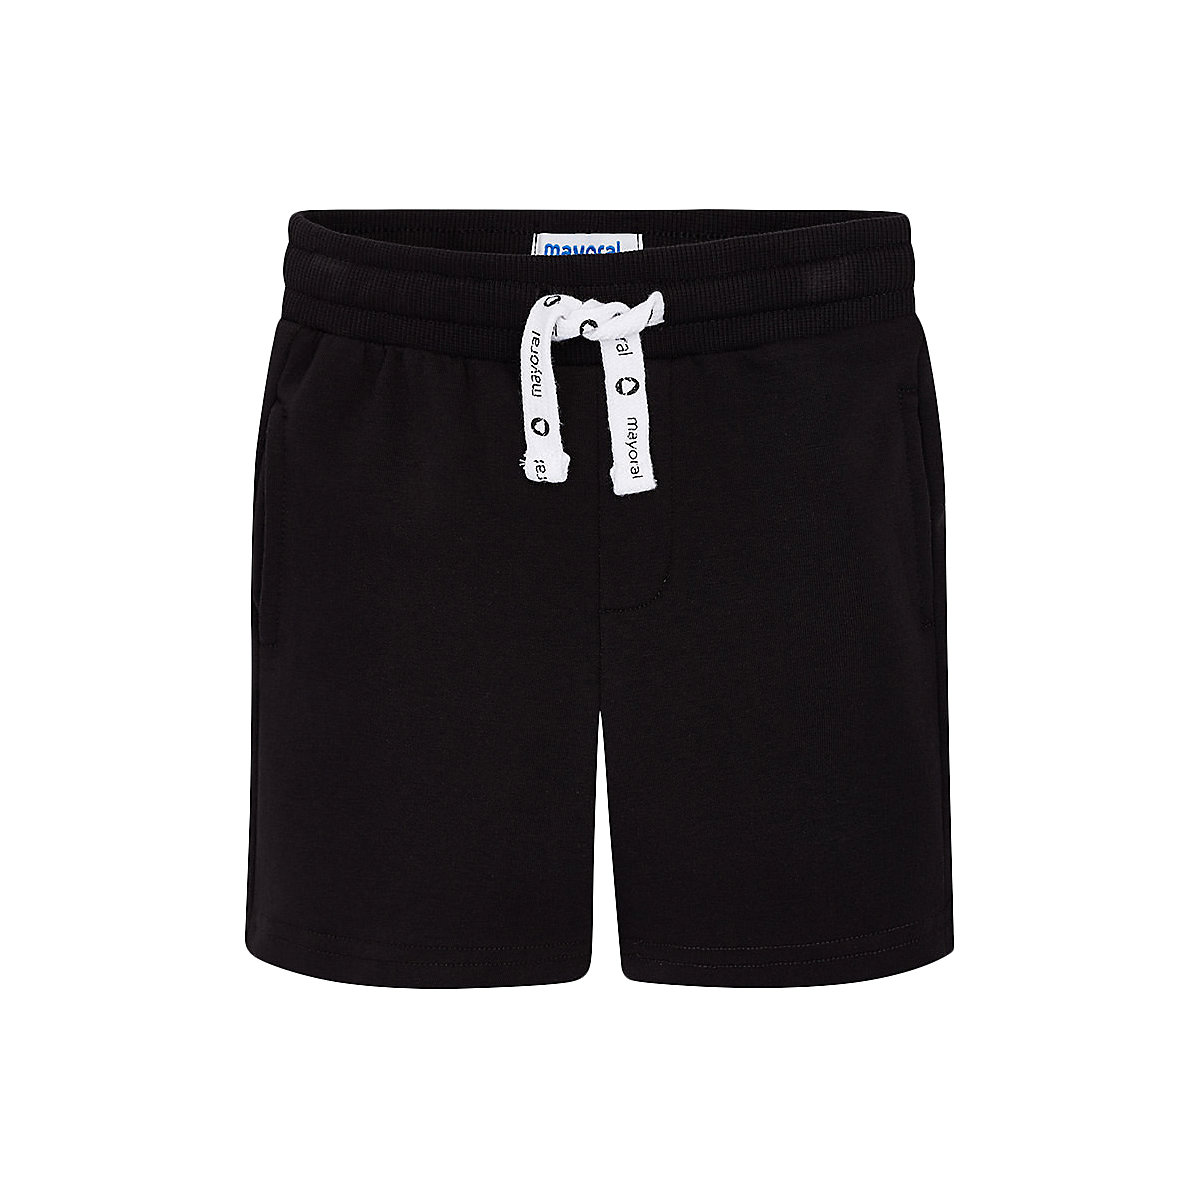 Shorts Mayoral 10692170 Children s Clothing clothes for boys with pockets briefs for kids